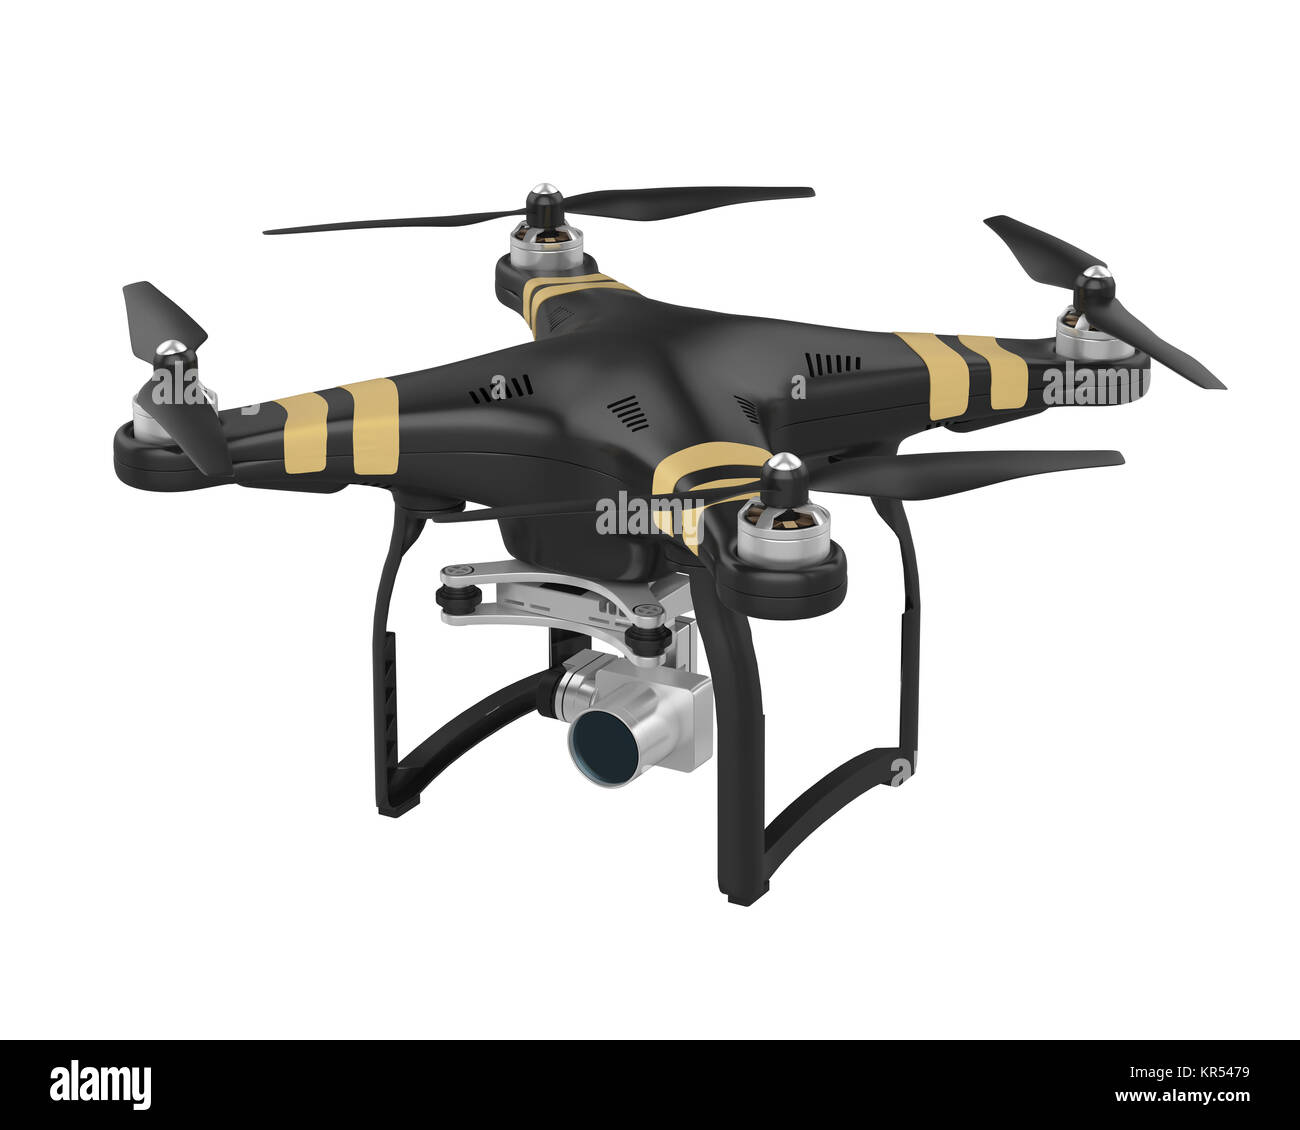 Drone with Camera Isolated - Stock Image